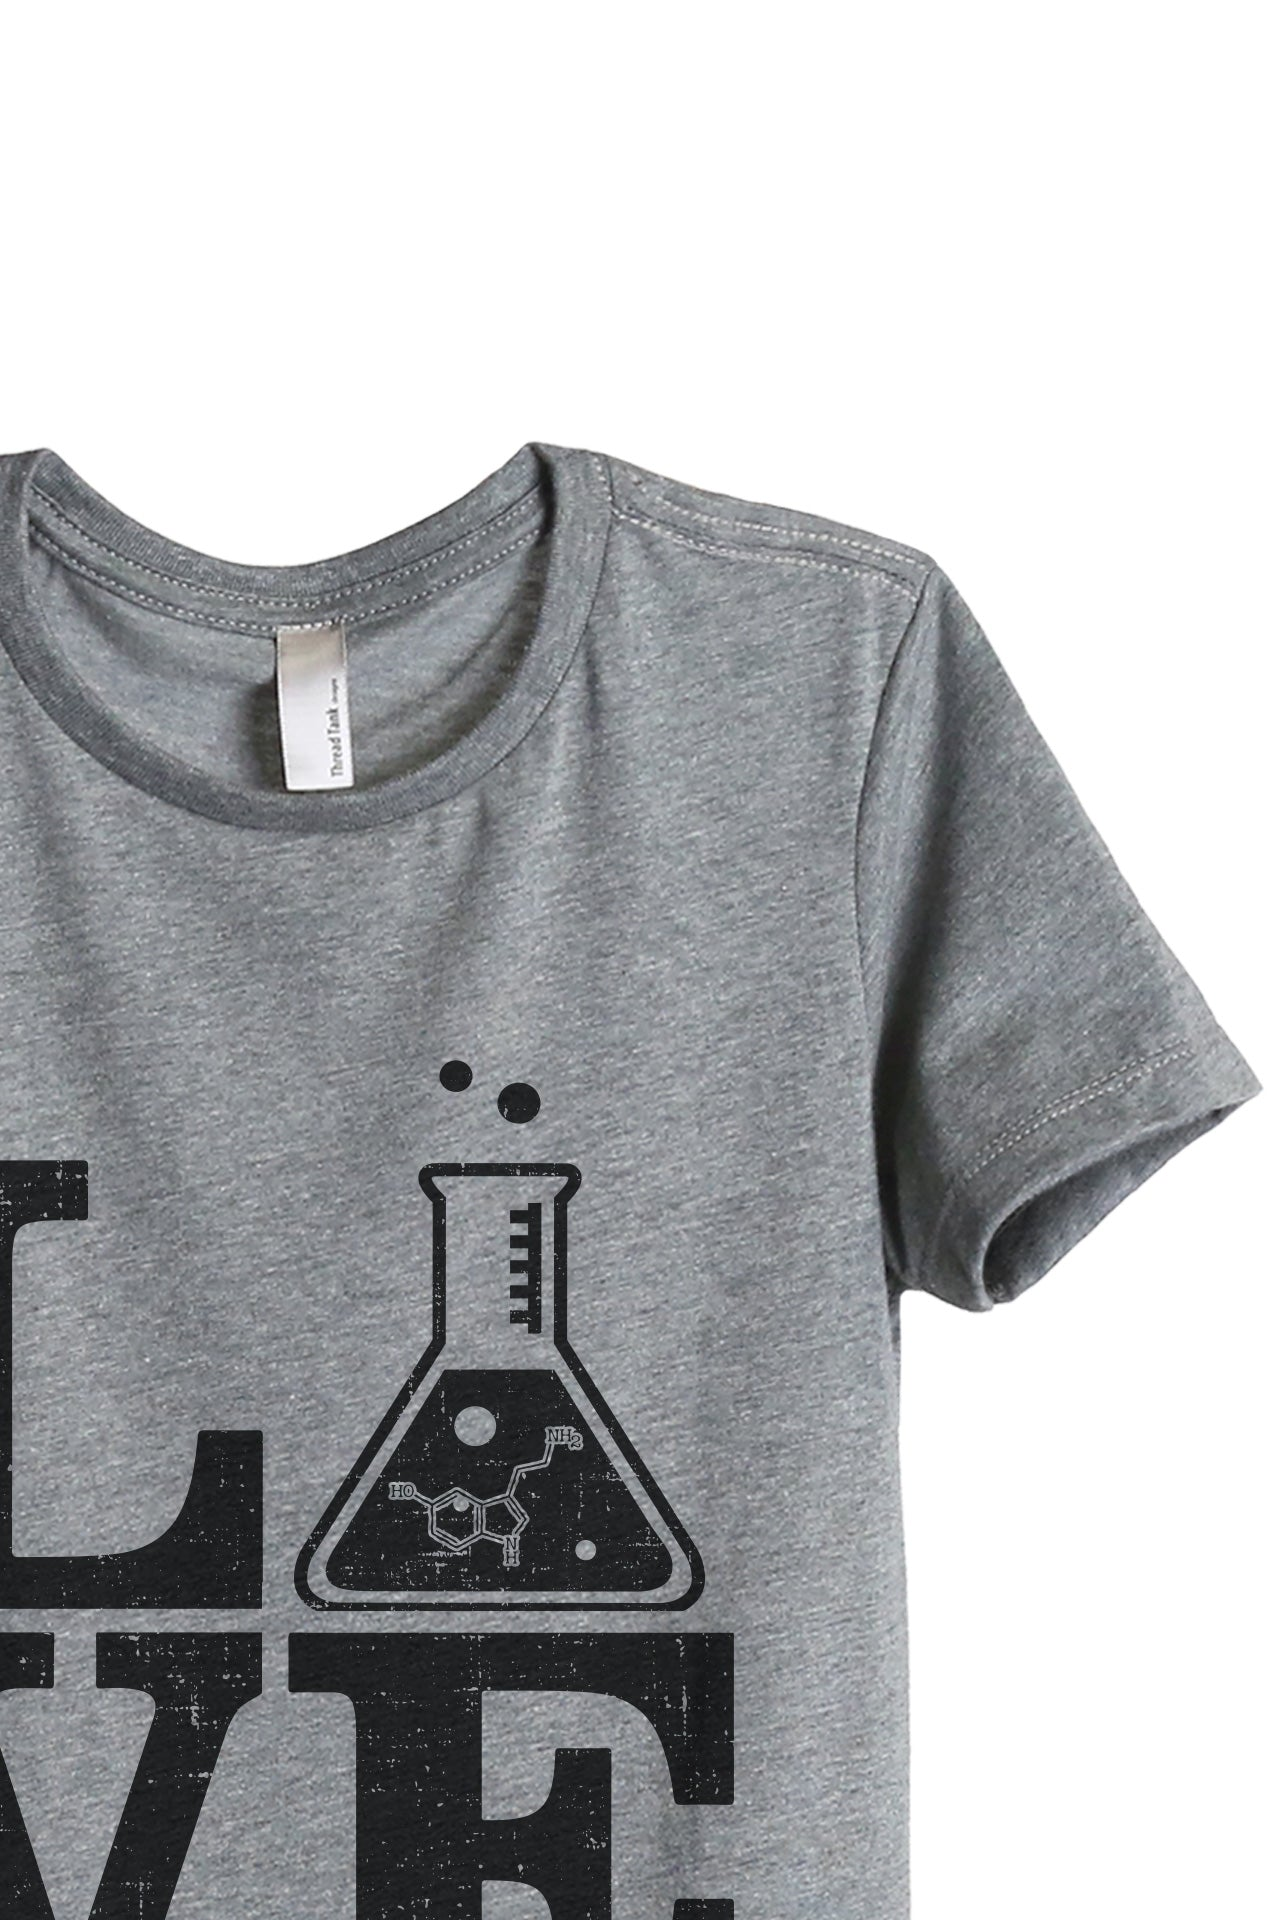 Teach Science LOVE Women's Relaxed Crewneck T-Shirt Top Tee Heather Grey